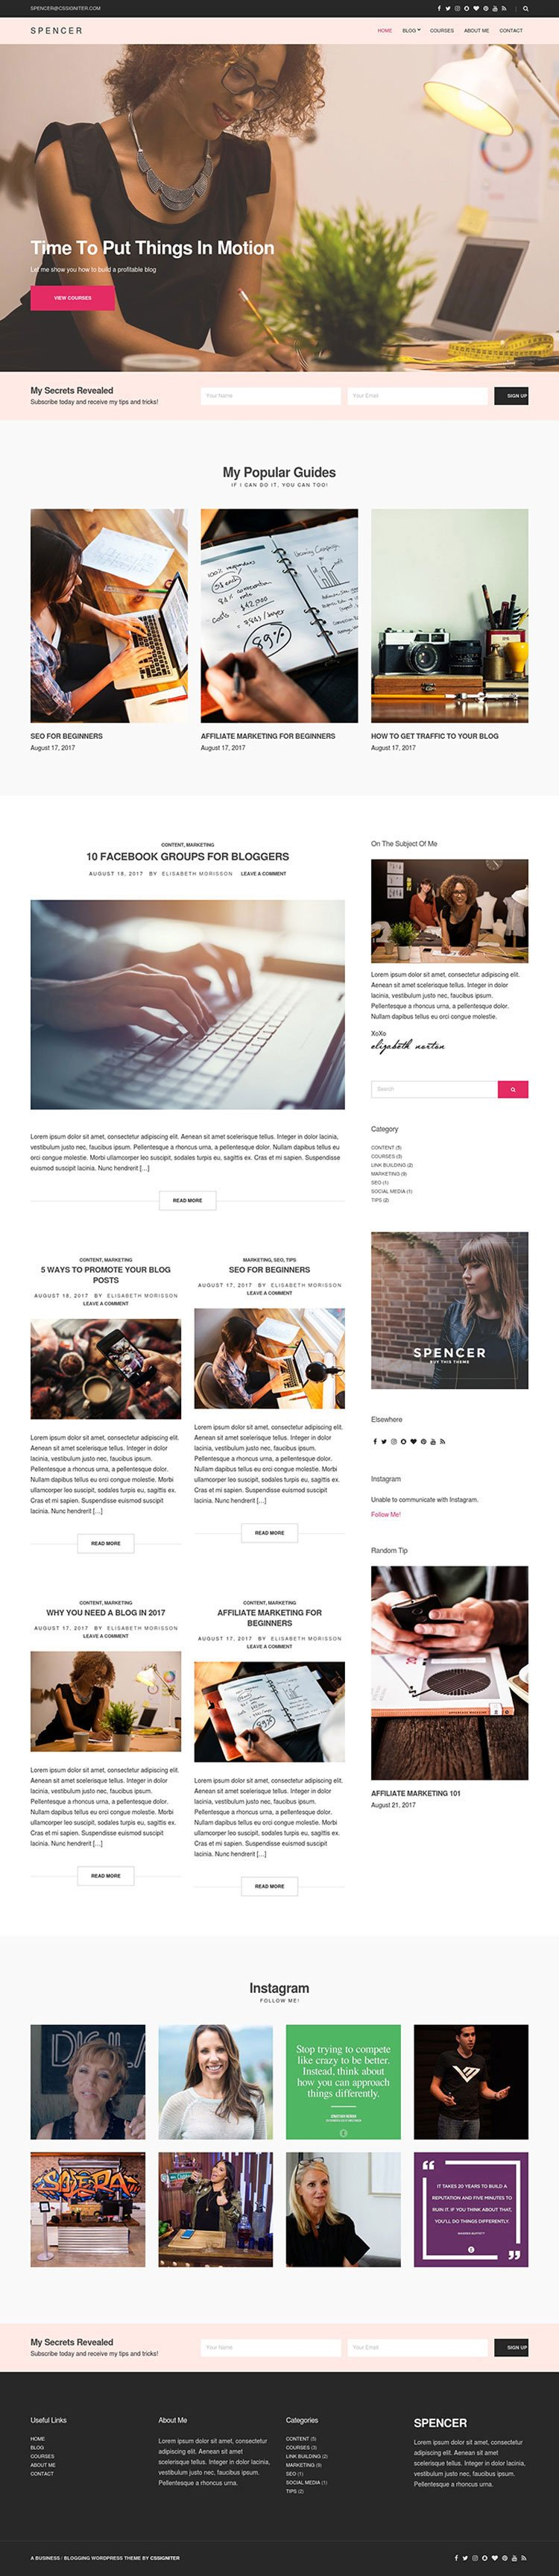 Spencer-A-Beautiful-Blog-WordPress-Theme